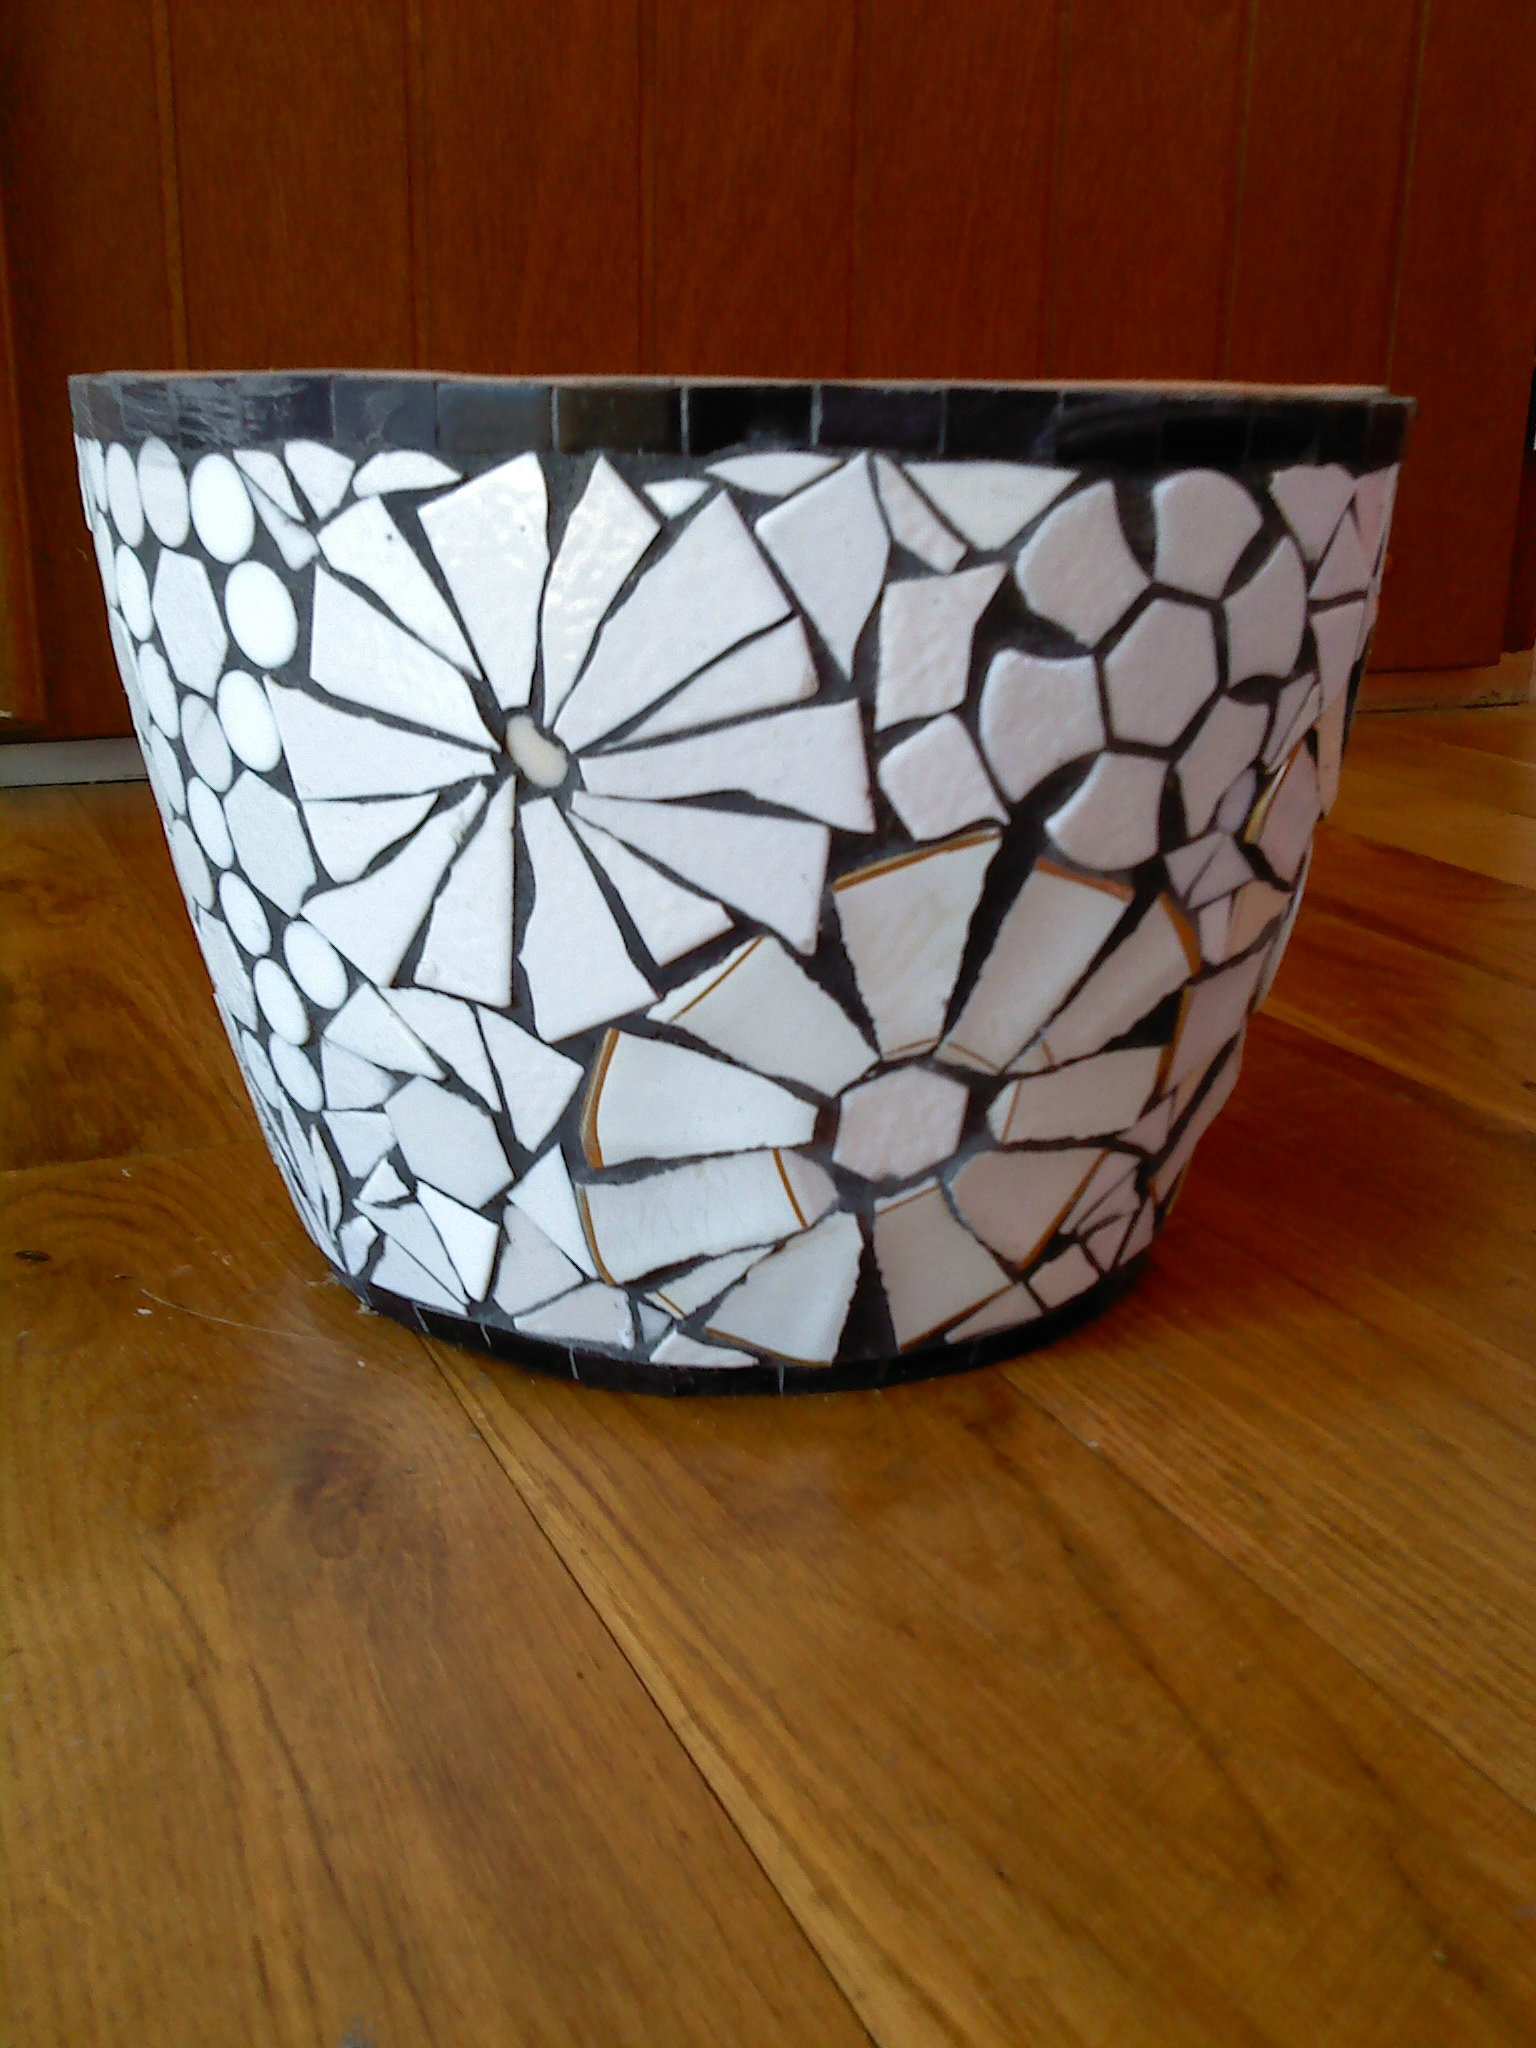 Pot de jardin - 35 € - Disponible